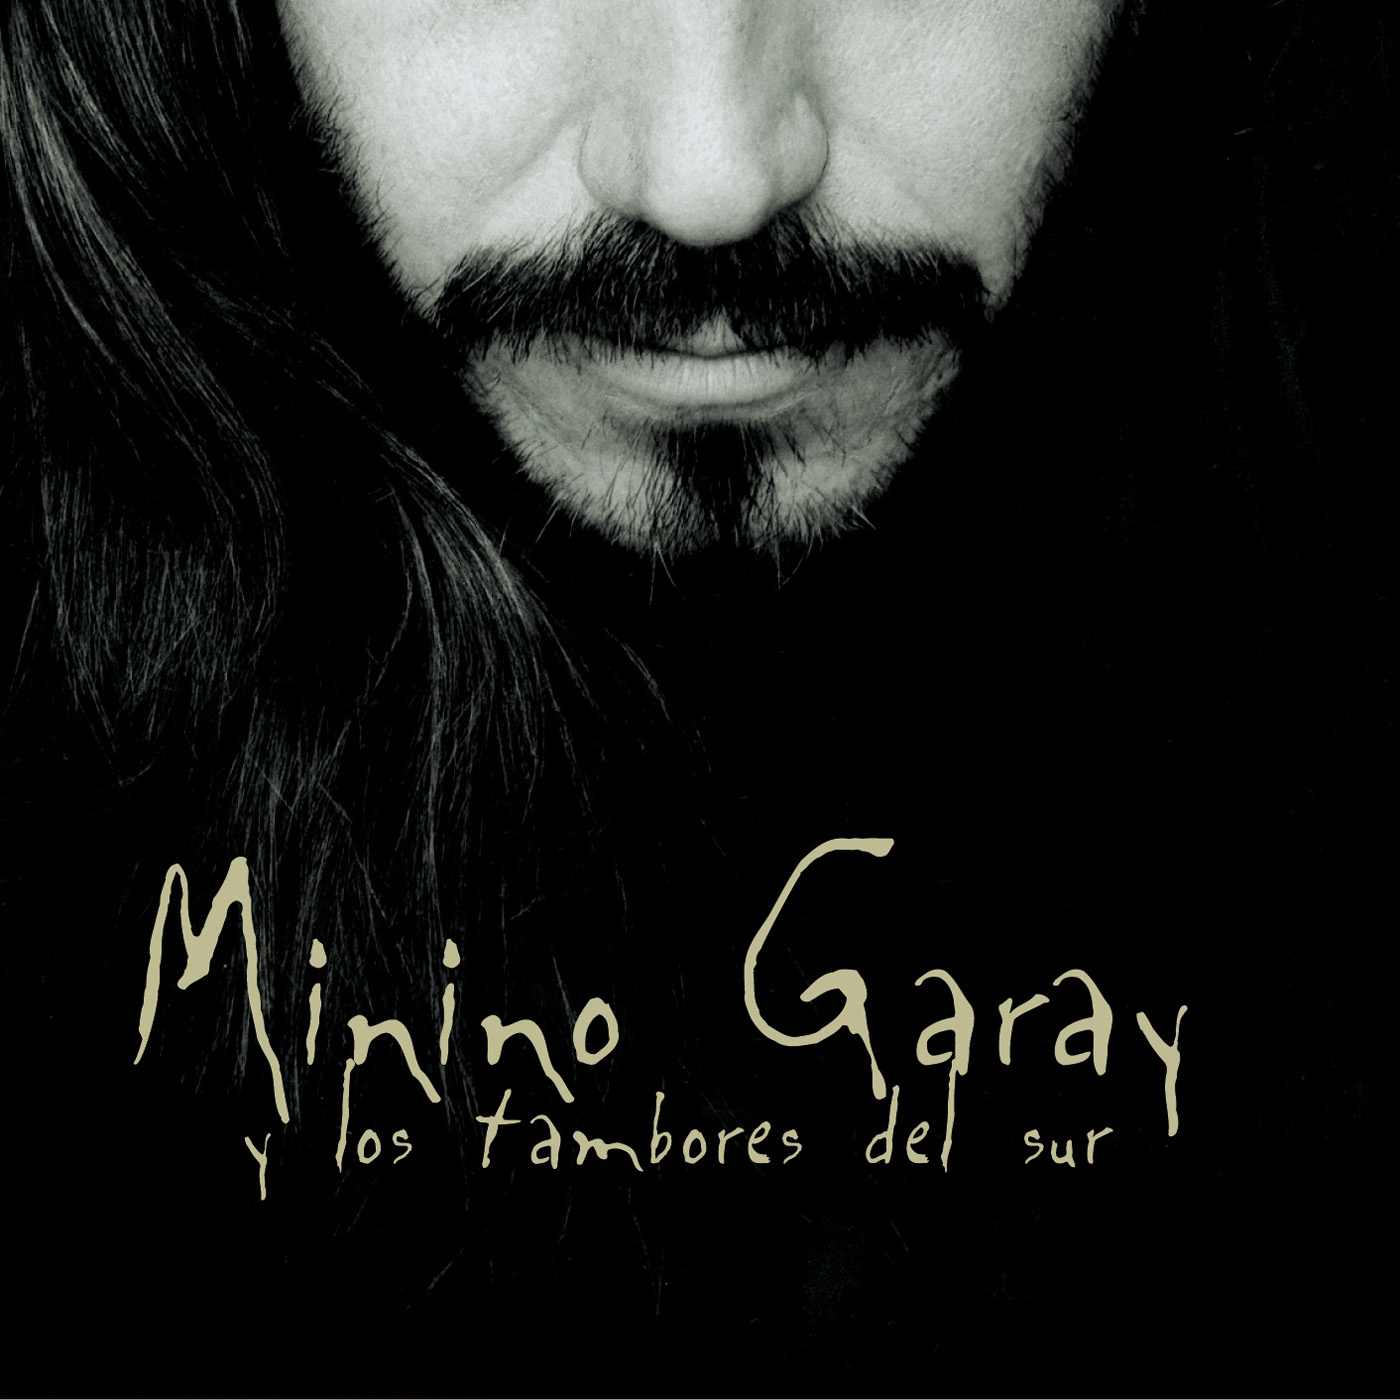 Minino Garay Y Los Tambul del Sul by Minino Garay cover